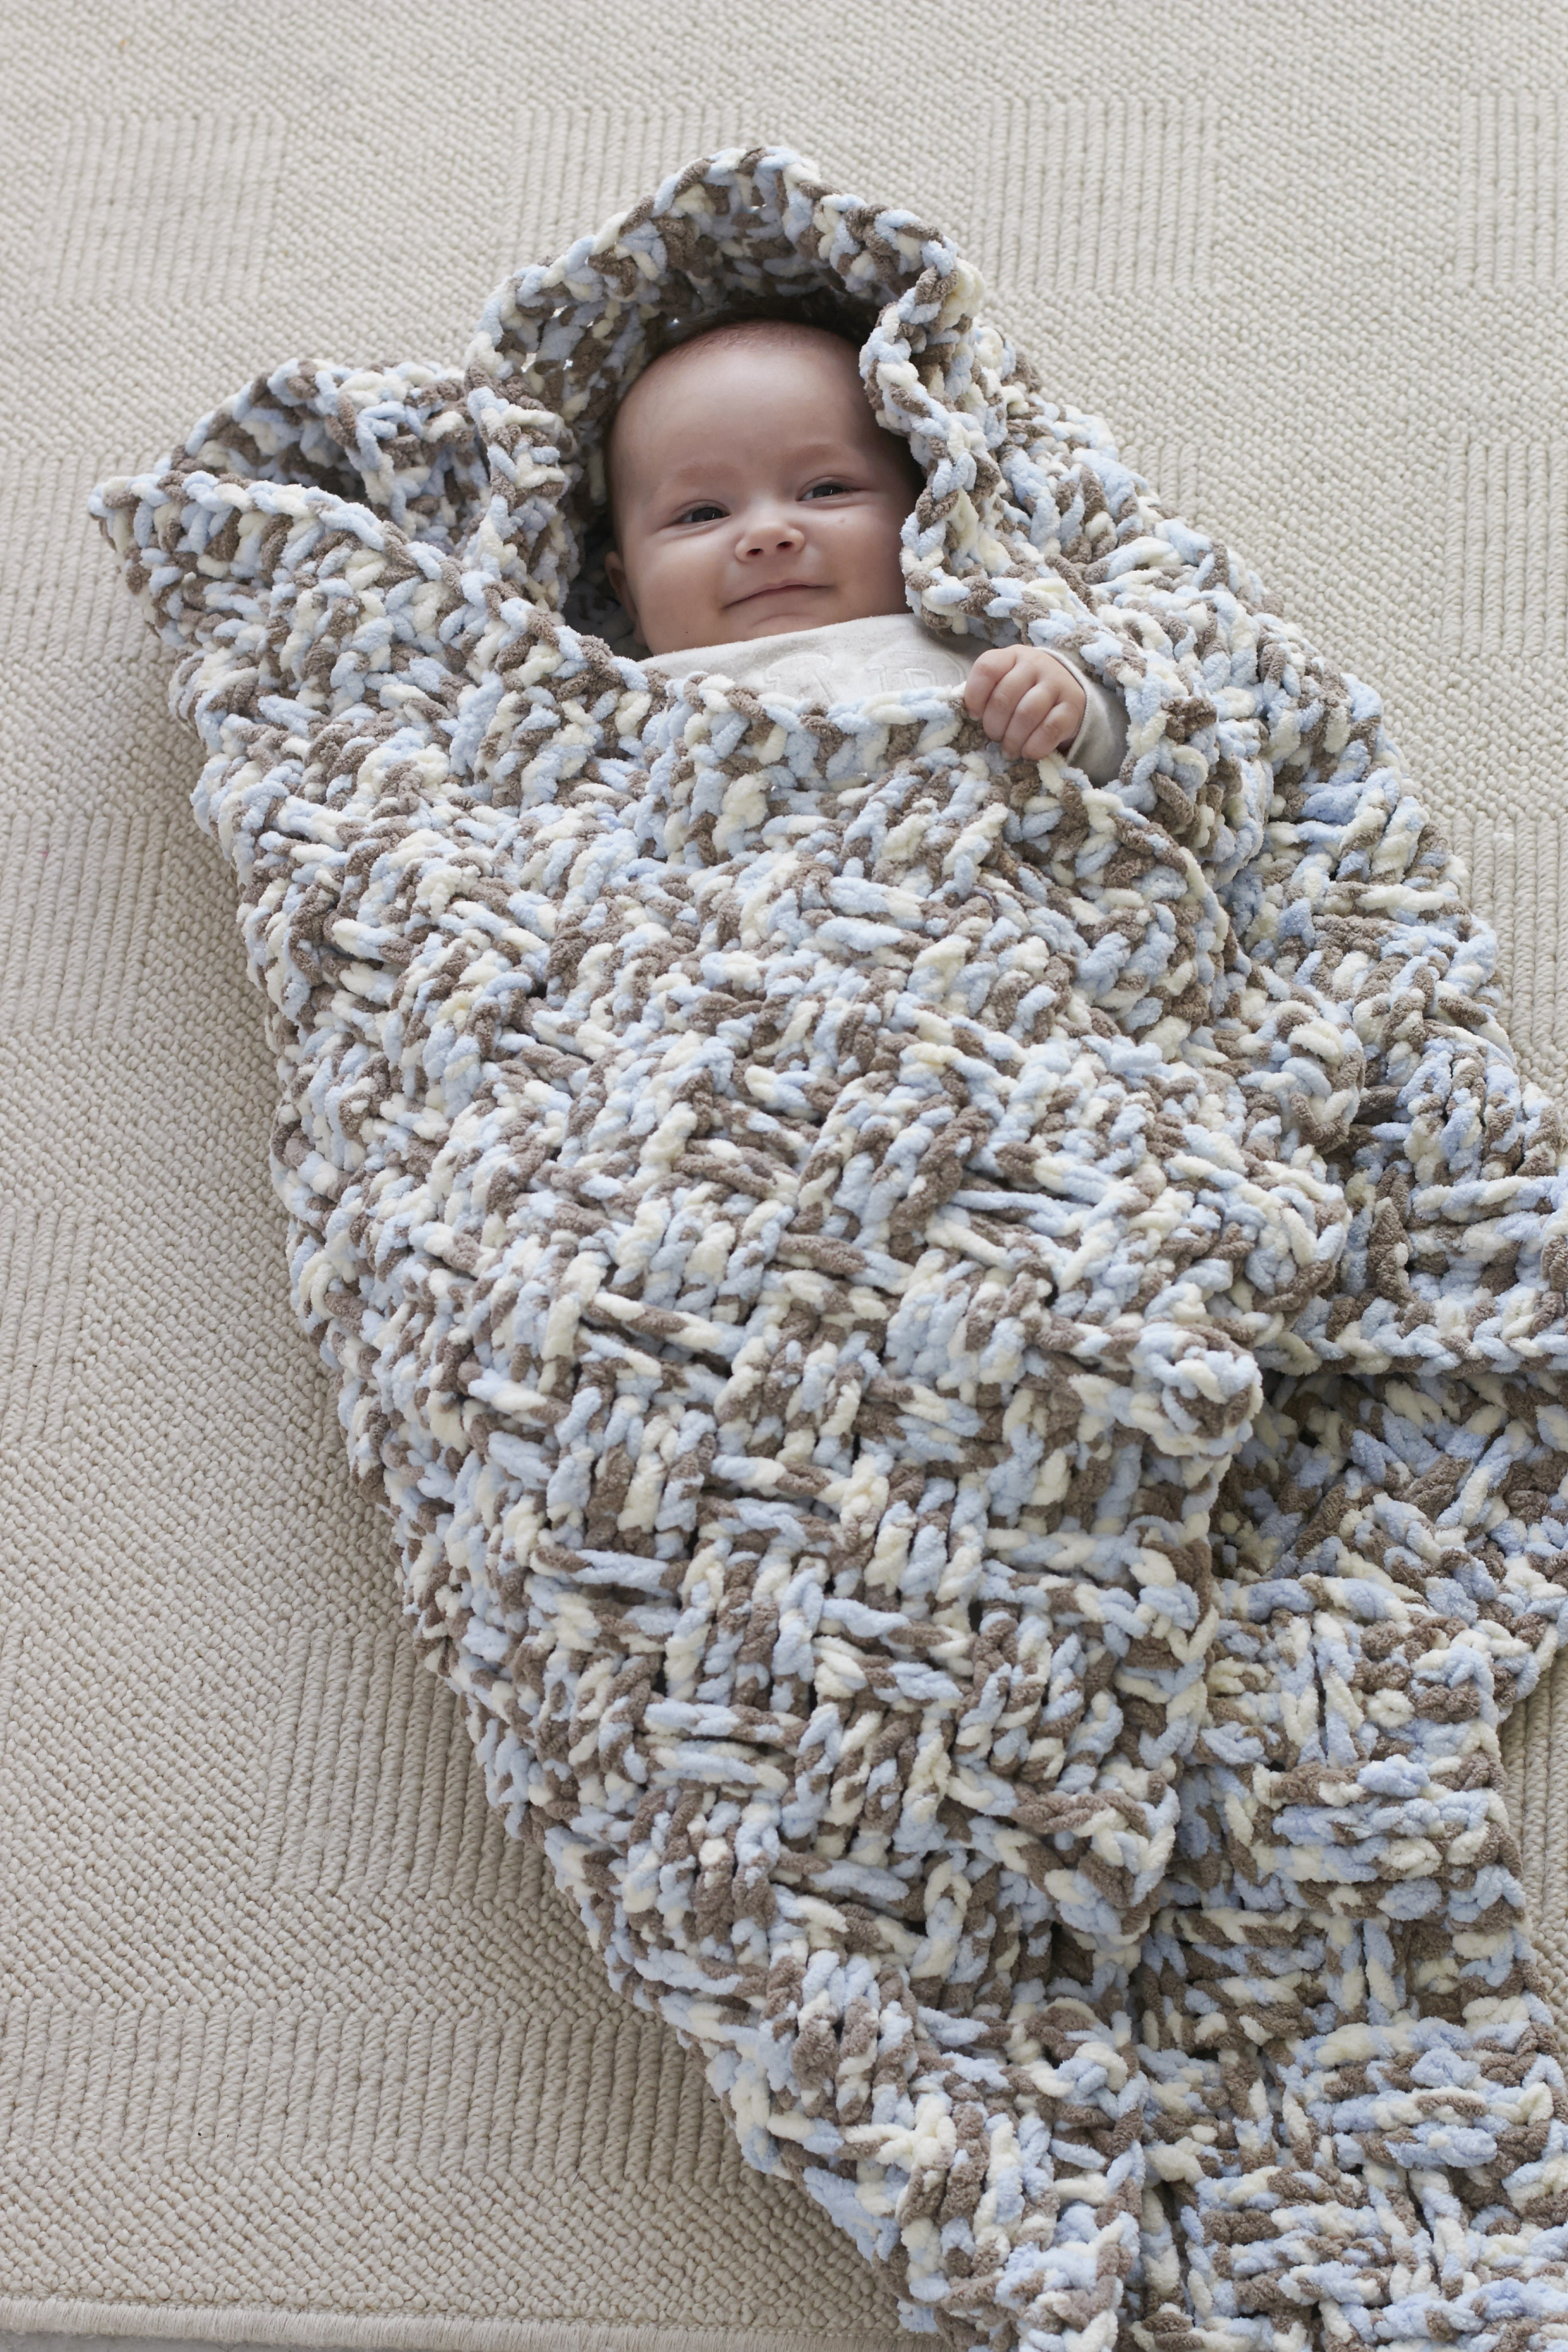 Bernat Blanket Yarn Awesome Dream Weaver Baby Blanket Vickie Howell Of Beautiful 42 Models Bernat Blanket Yarn